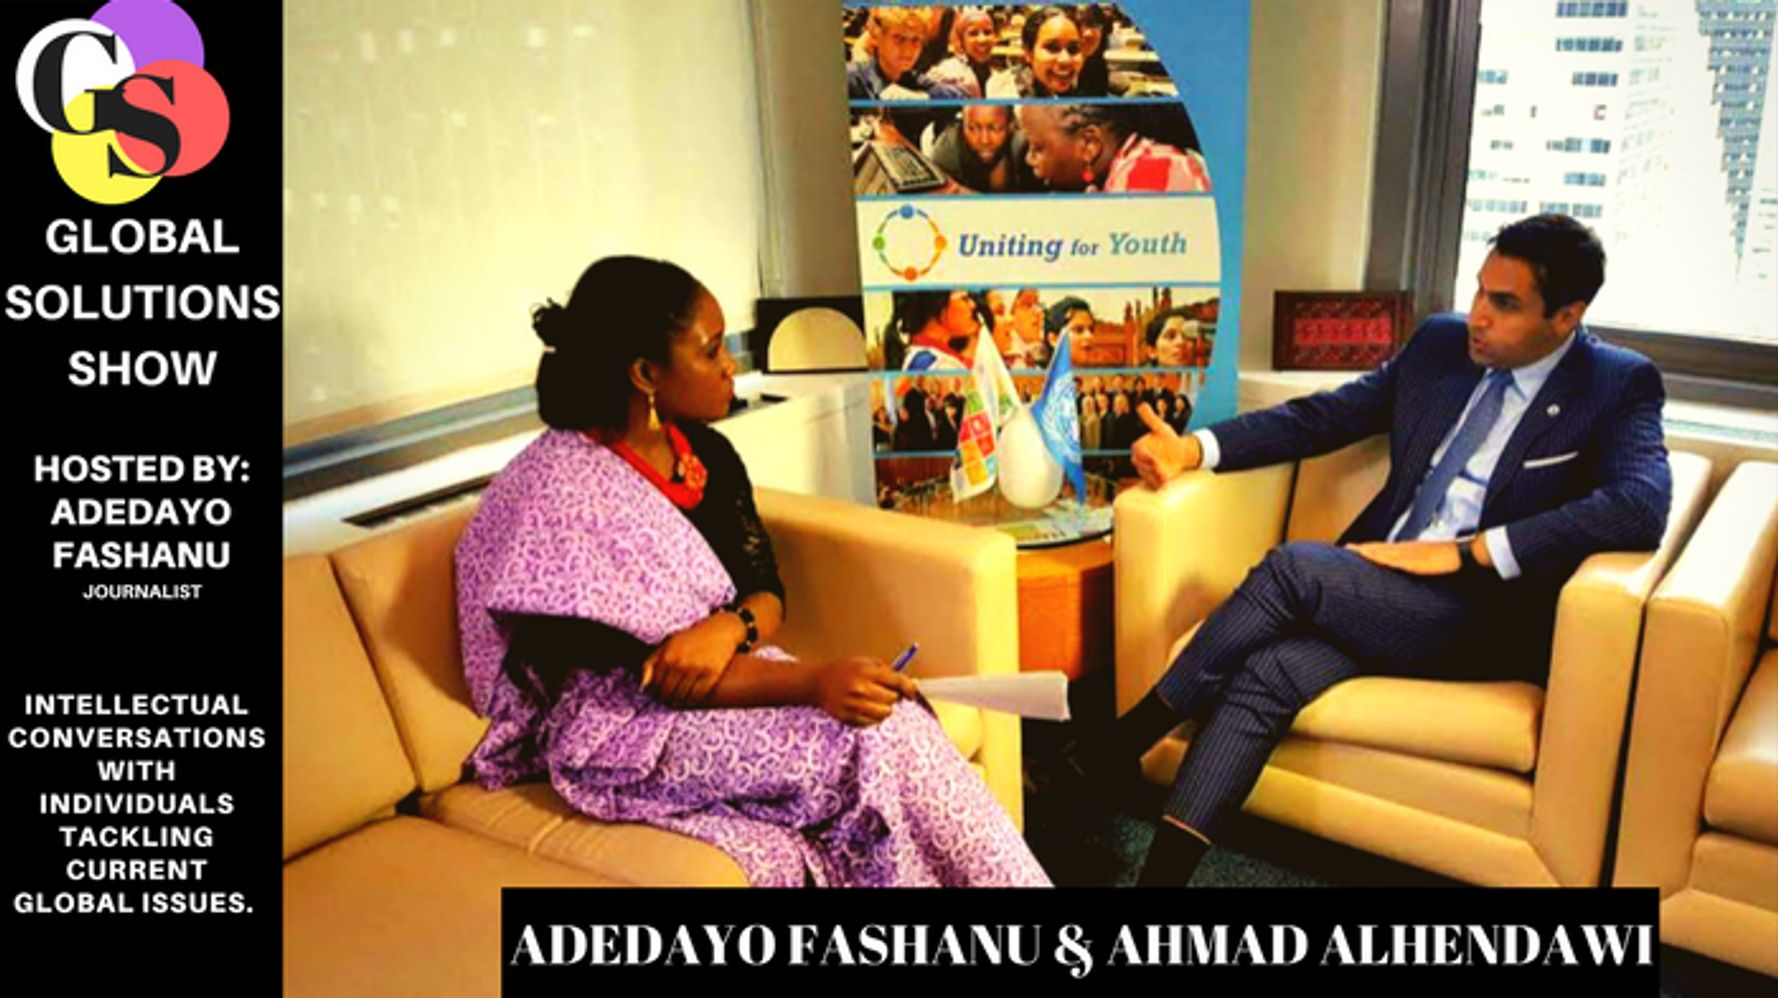 Ahmad Alhendawi global solutions ep1: former united nations youth envoy